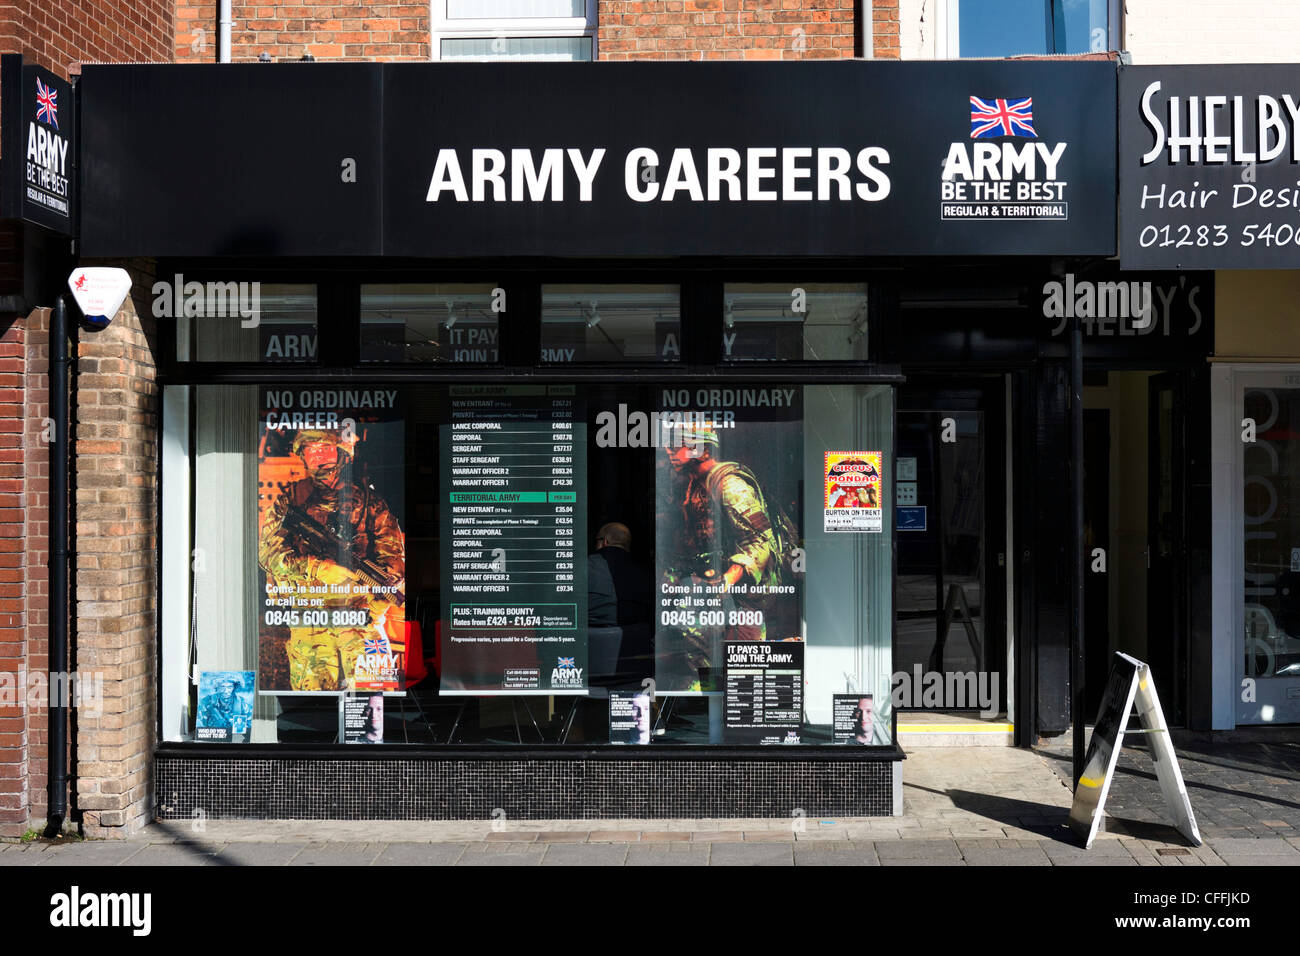 Army Careers office in the town centre, Burton-upon-Trent, Staffordshire, England, UK - Stock Image